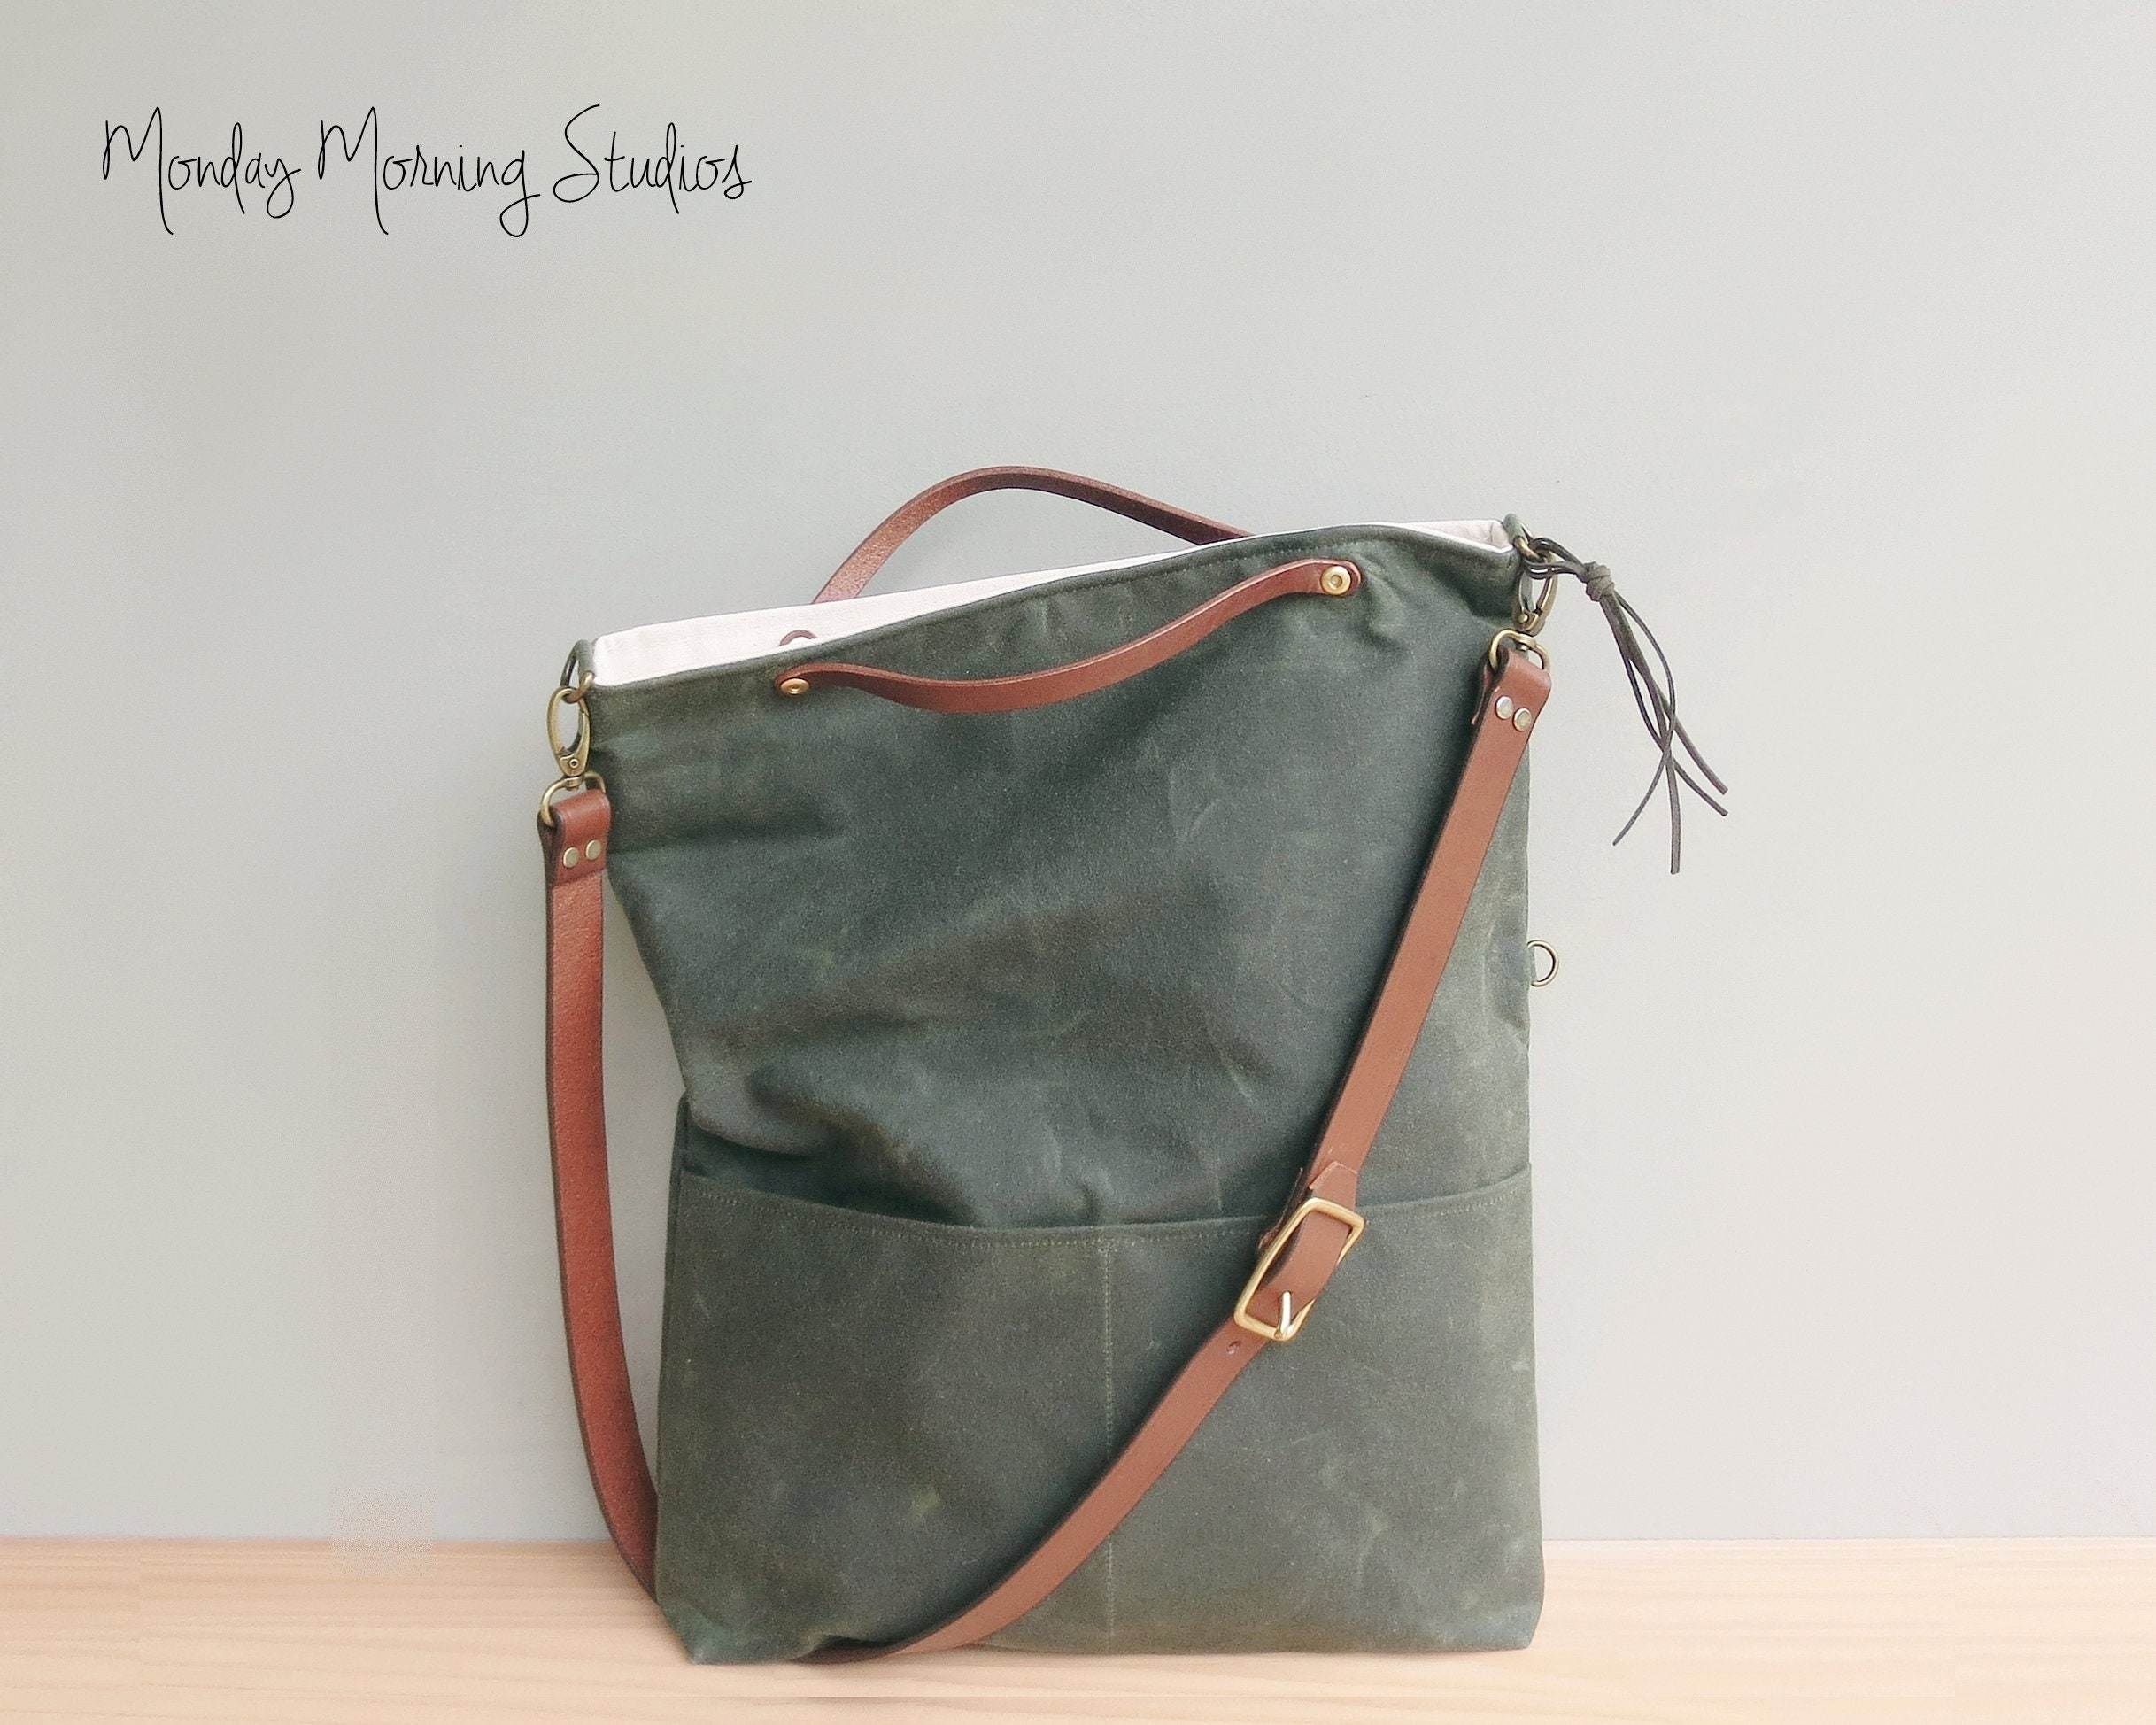 76317d01f3 Convertible Waxed Canvas Tote with Leather Strap in Avocado